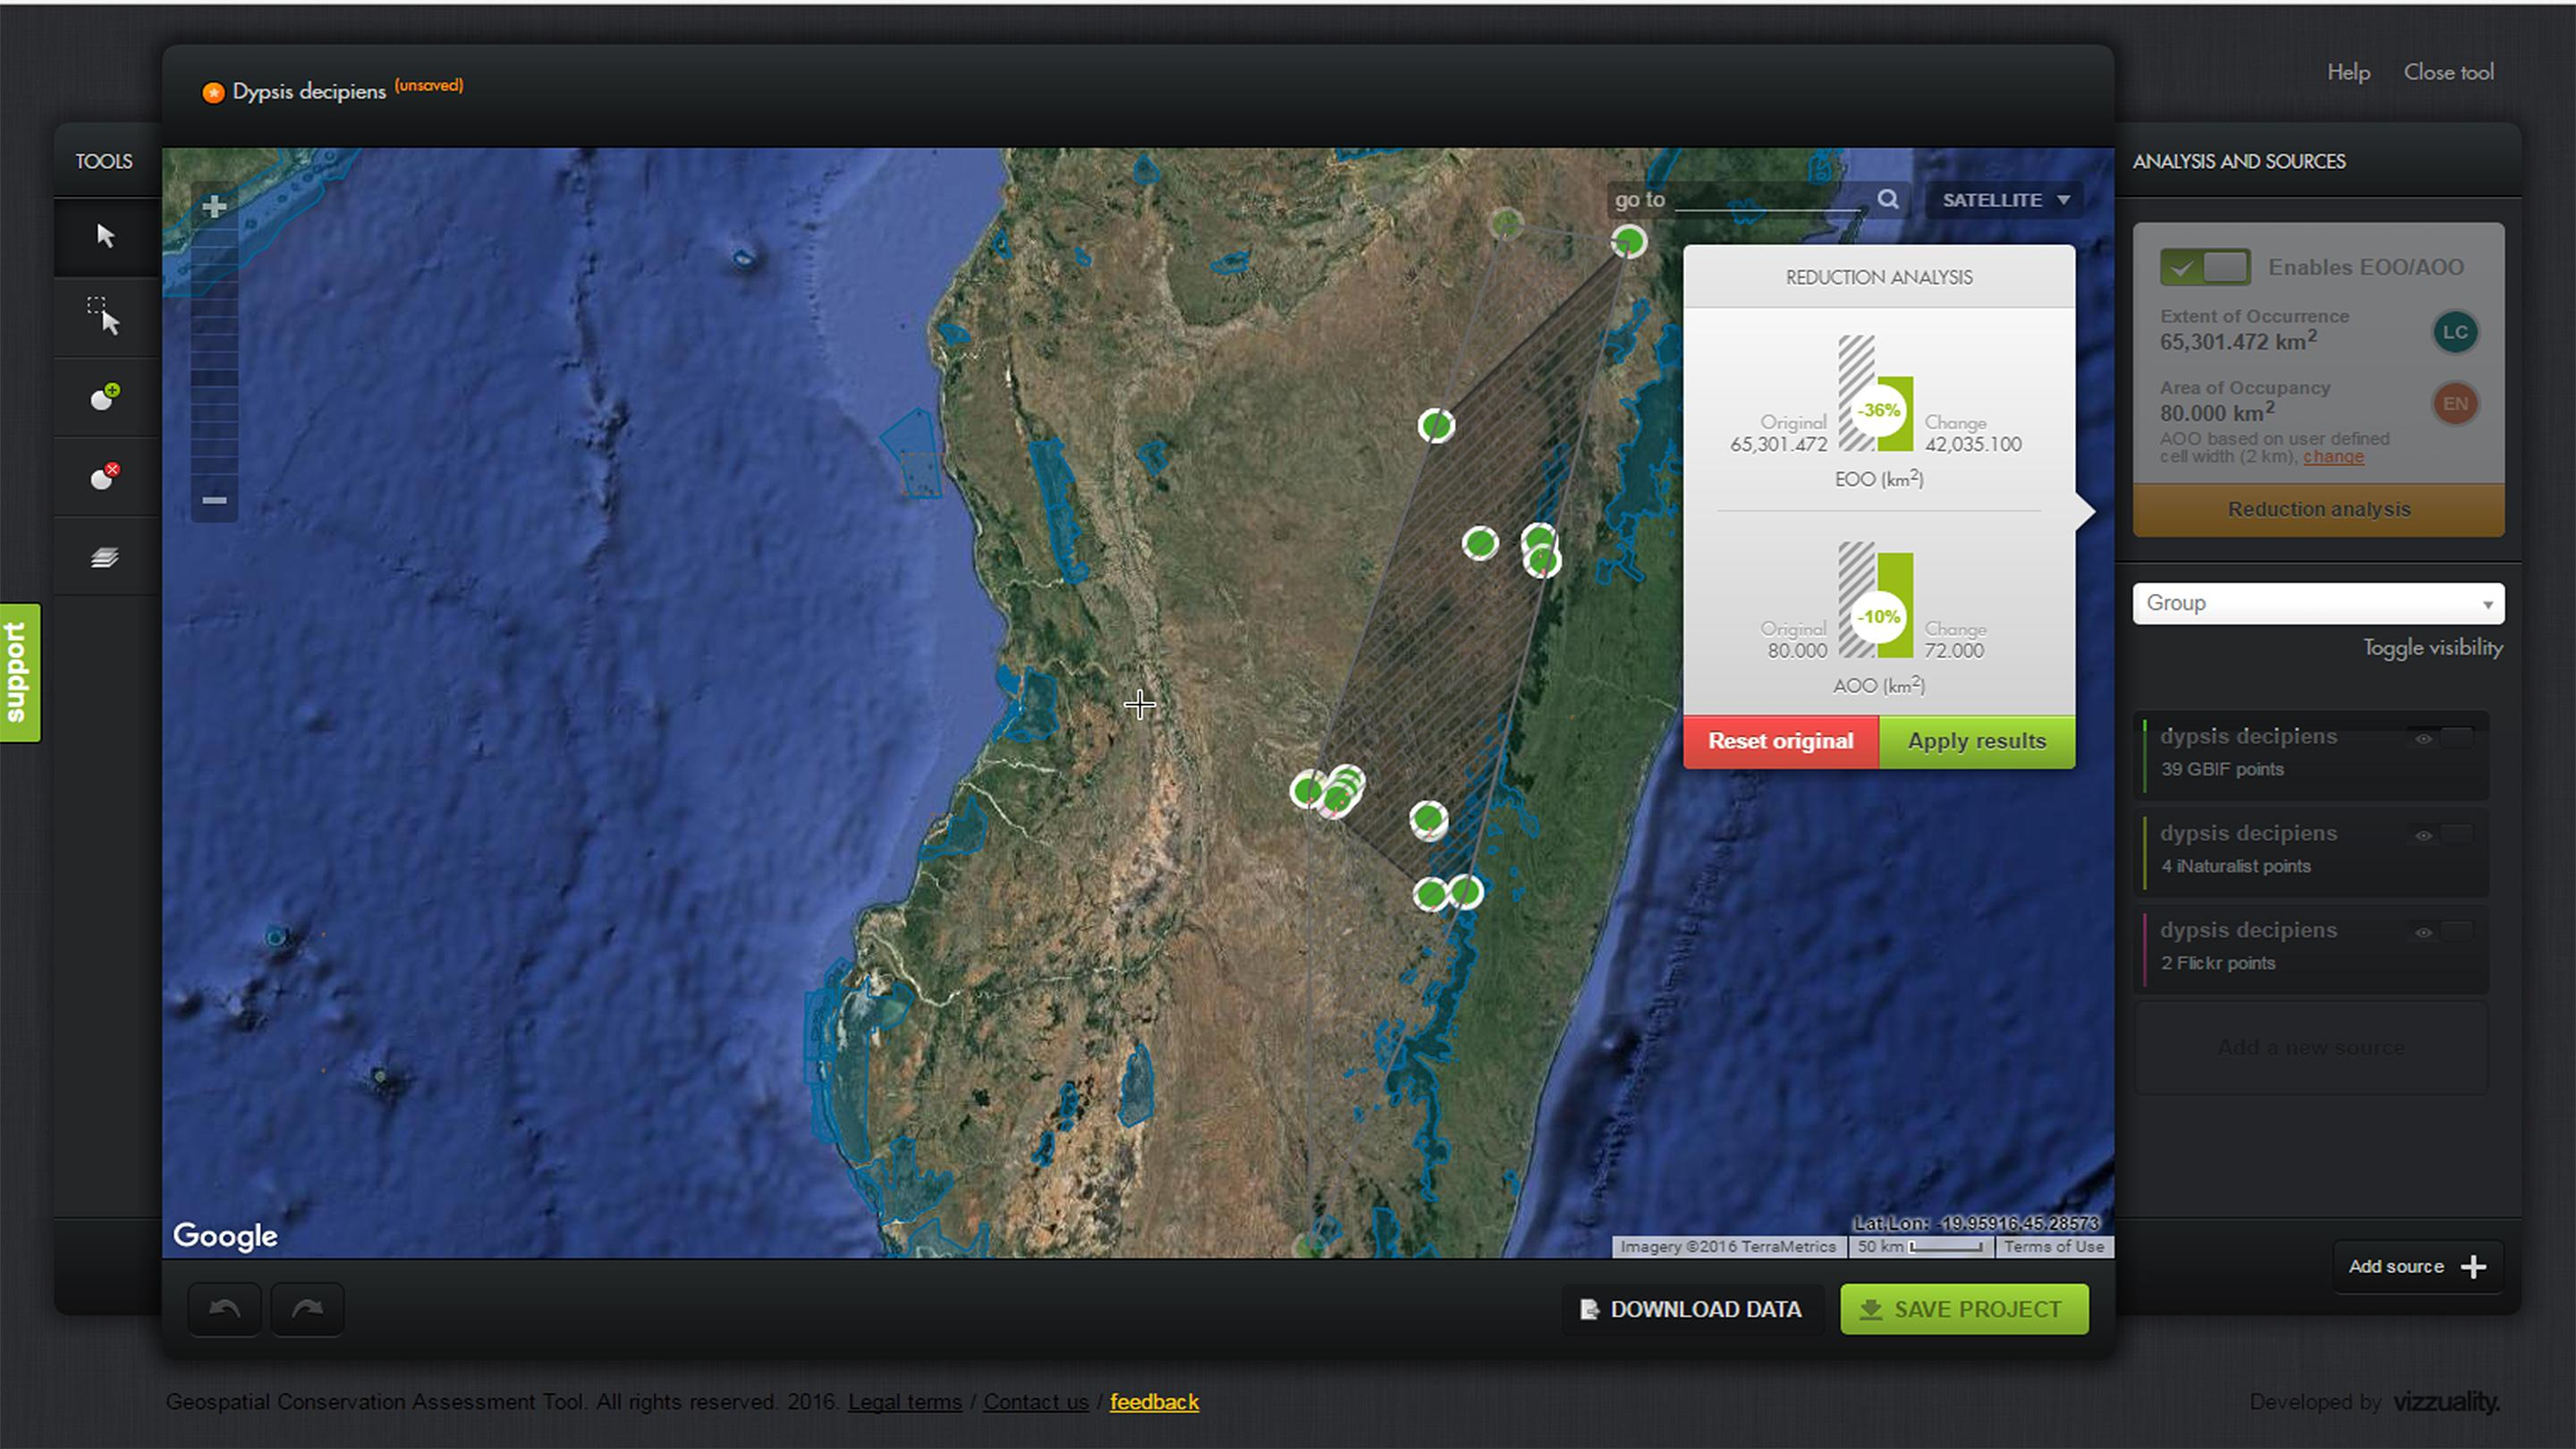 Geospatial Conservation Assessment Tool updated